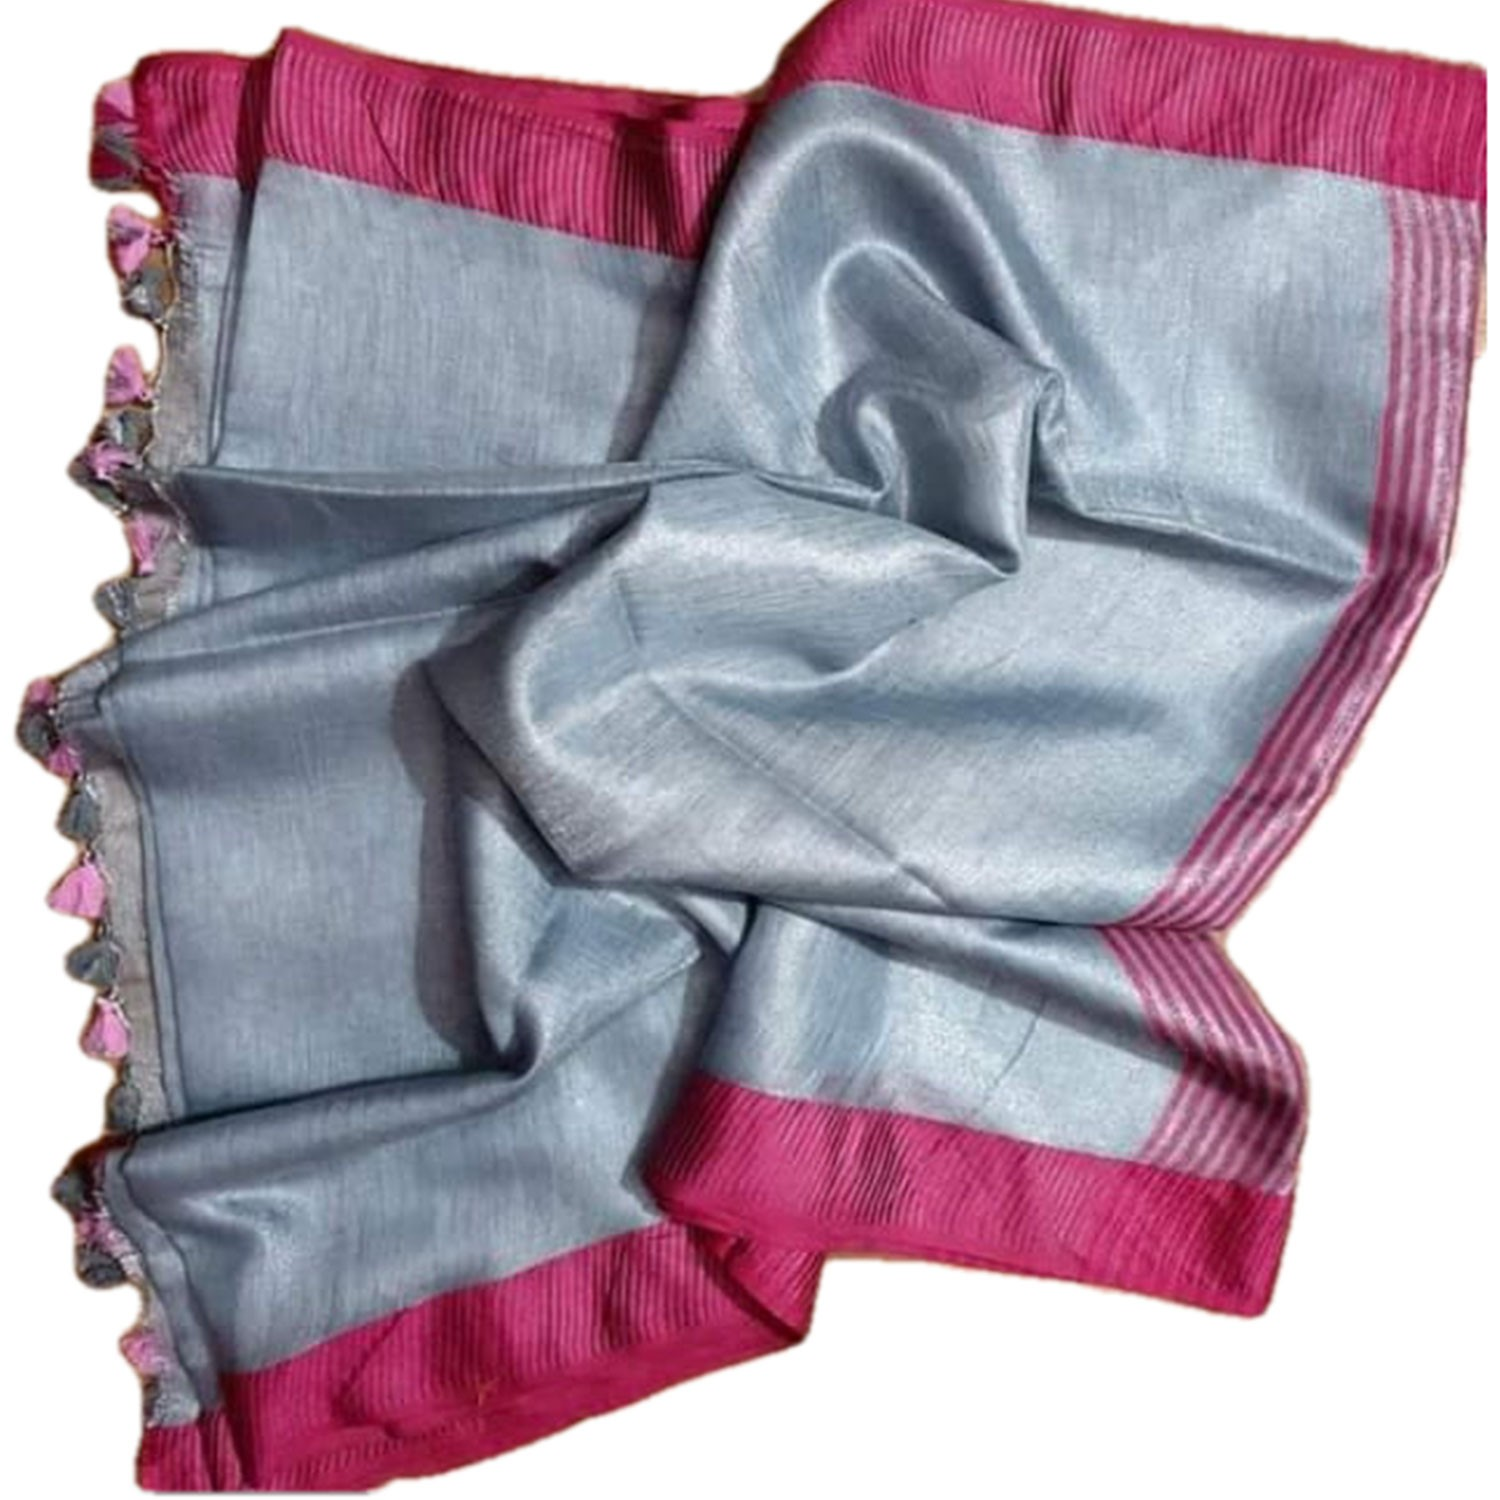 Ethnic Indian Women's Bhagalpuri Handloom Beautiful Linen Tissue Saree with Running Blouse  Grey With Pink Border